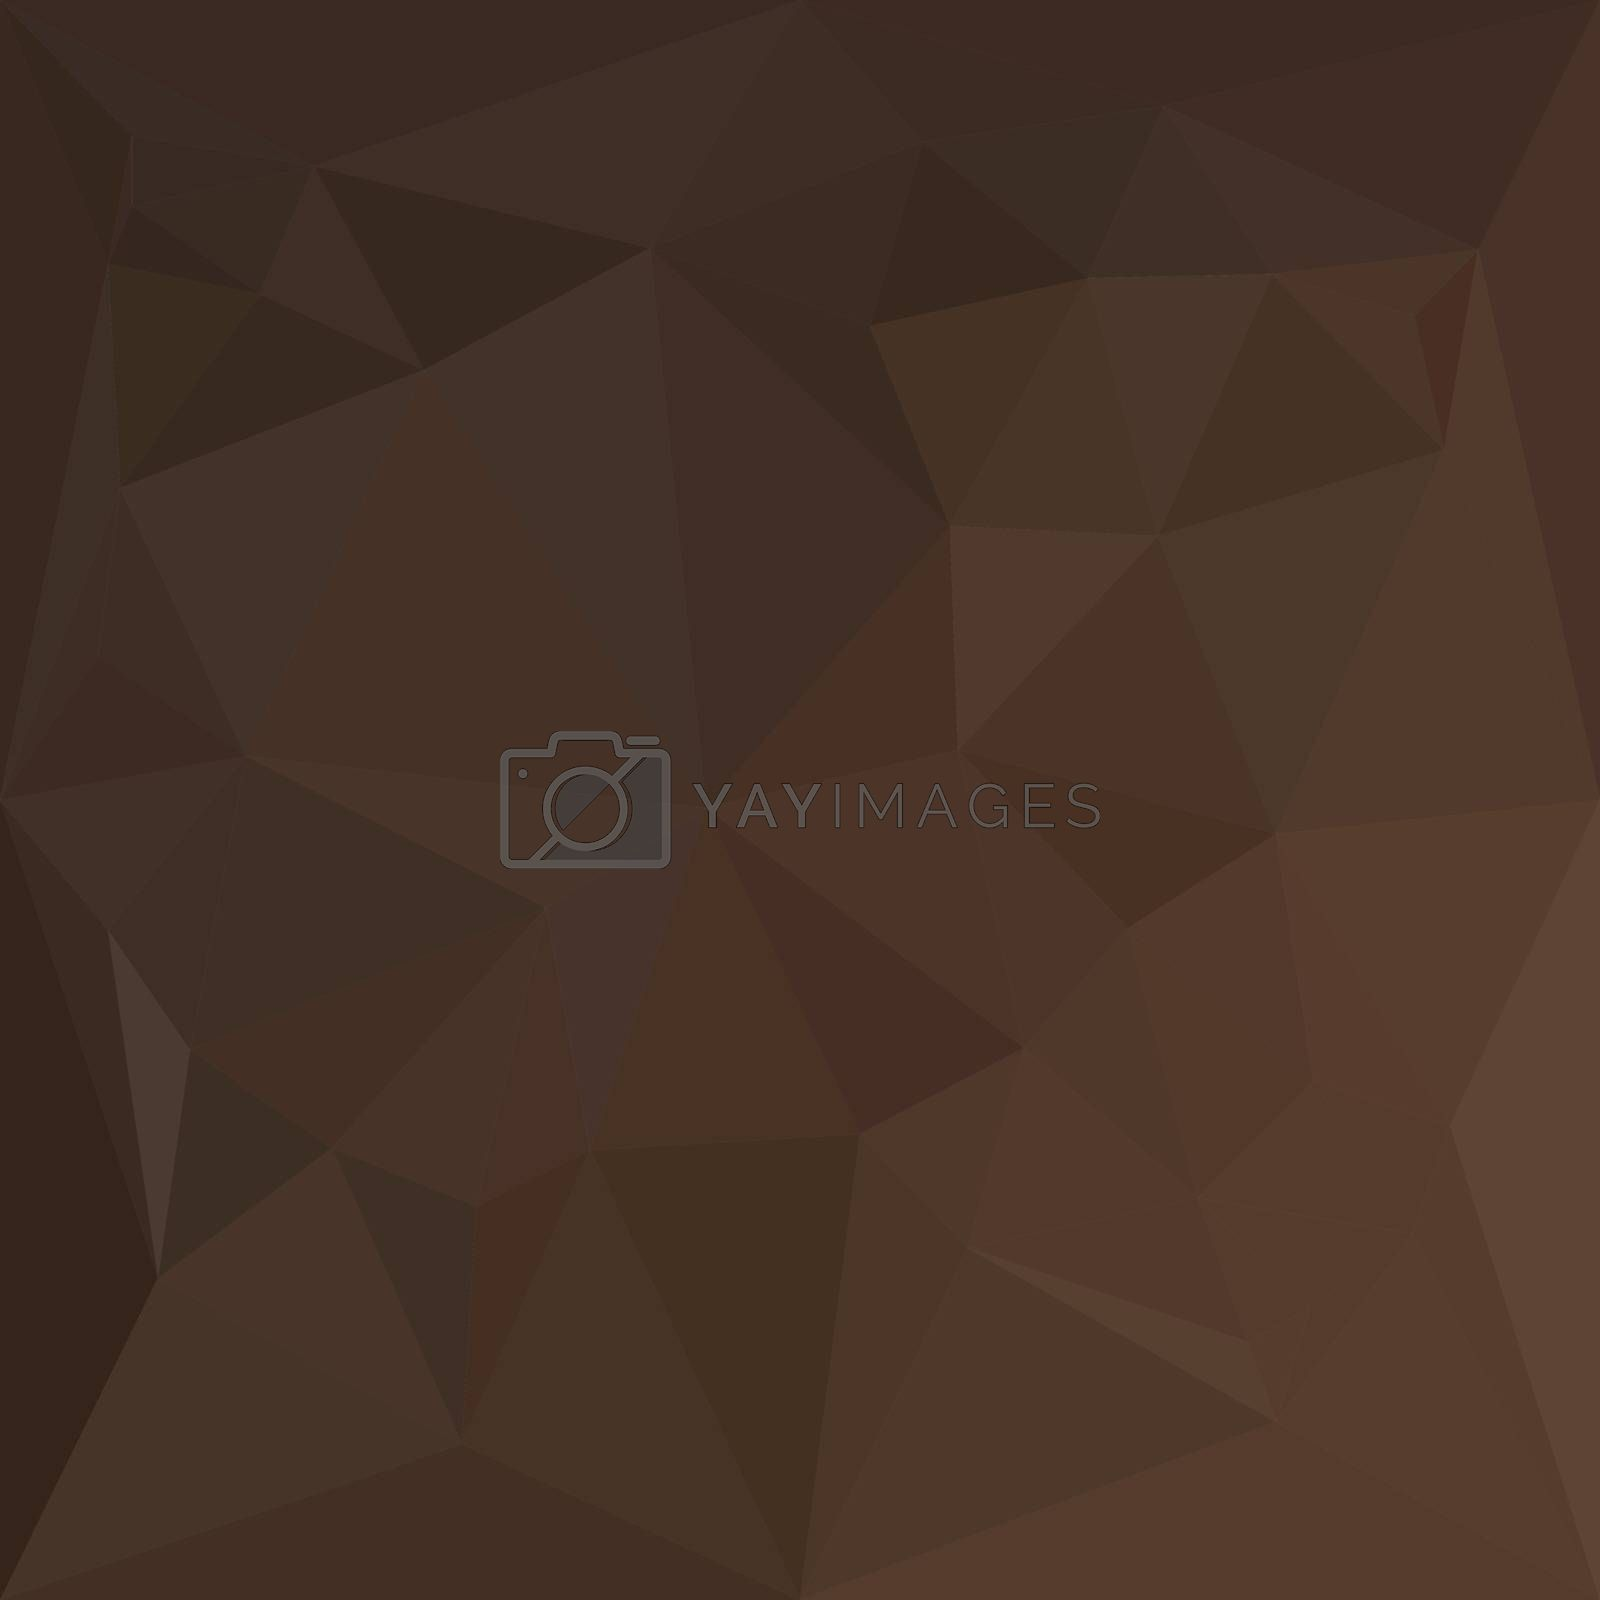 Low polygon style illustration of a dark puce brown abstract geometric background.